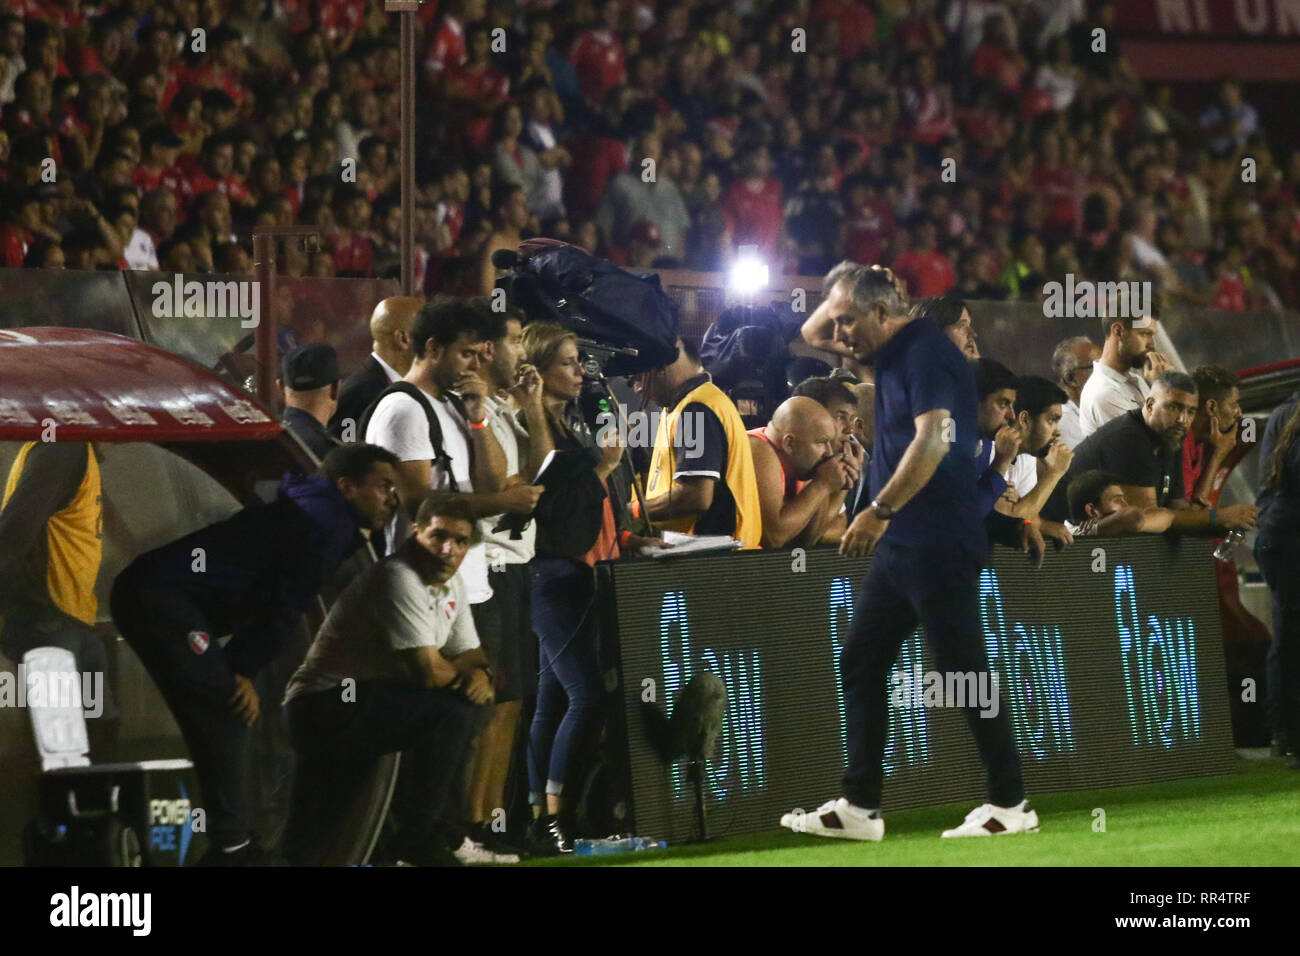 BUENOS AIRES, 23.02.2019: Ariel Holan, coach of Independiente, during the derby between Independiente and Racing for Superliga Argentina, this saturday on Libertadores de América Stadium on Buenos Aires, Argentina. ( Credit: Néstor J. Beremblum/Alamy Live News - Stock Image